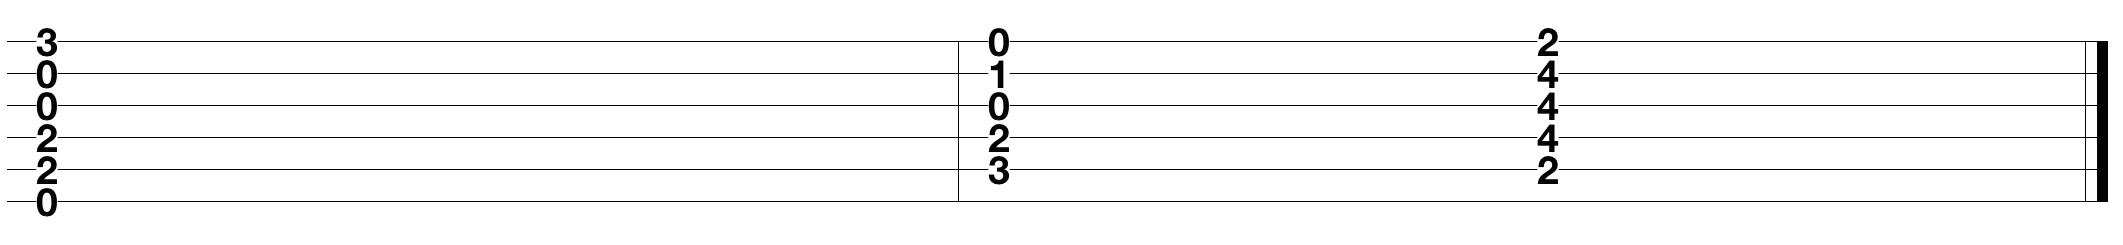 free-easy-guitar-tabs-for-beginners-acoustic_1.png